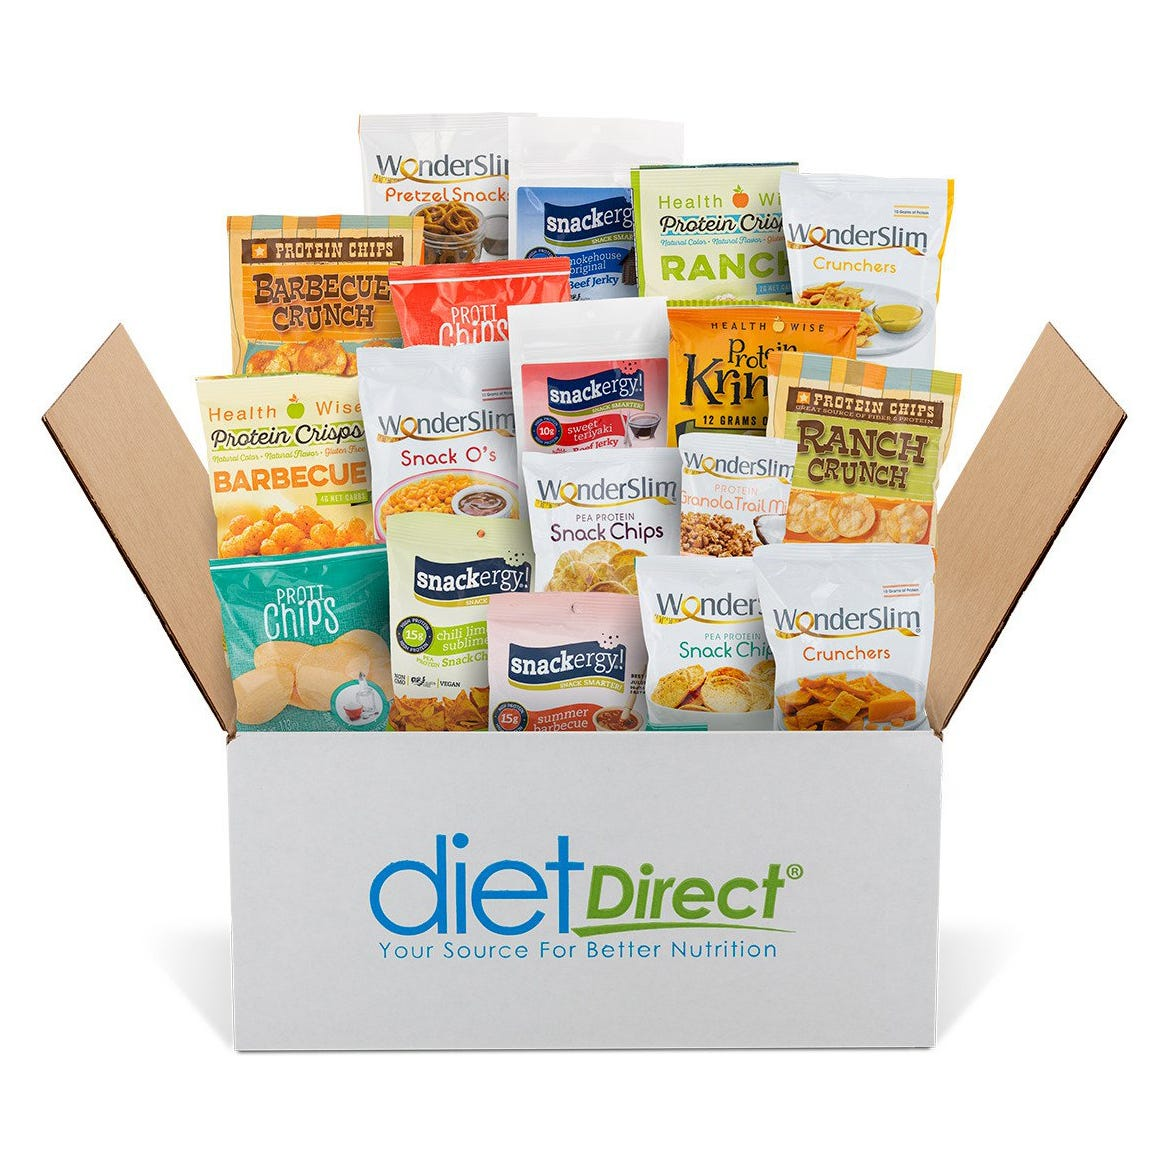 High Protein Snacks Variety Box (30 Ct)  High Protein Chips  Pretzels  Crisps  Jerky And More